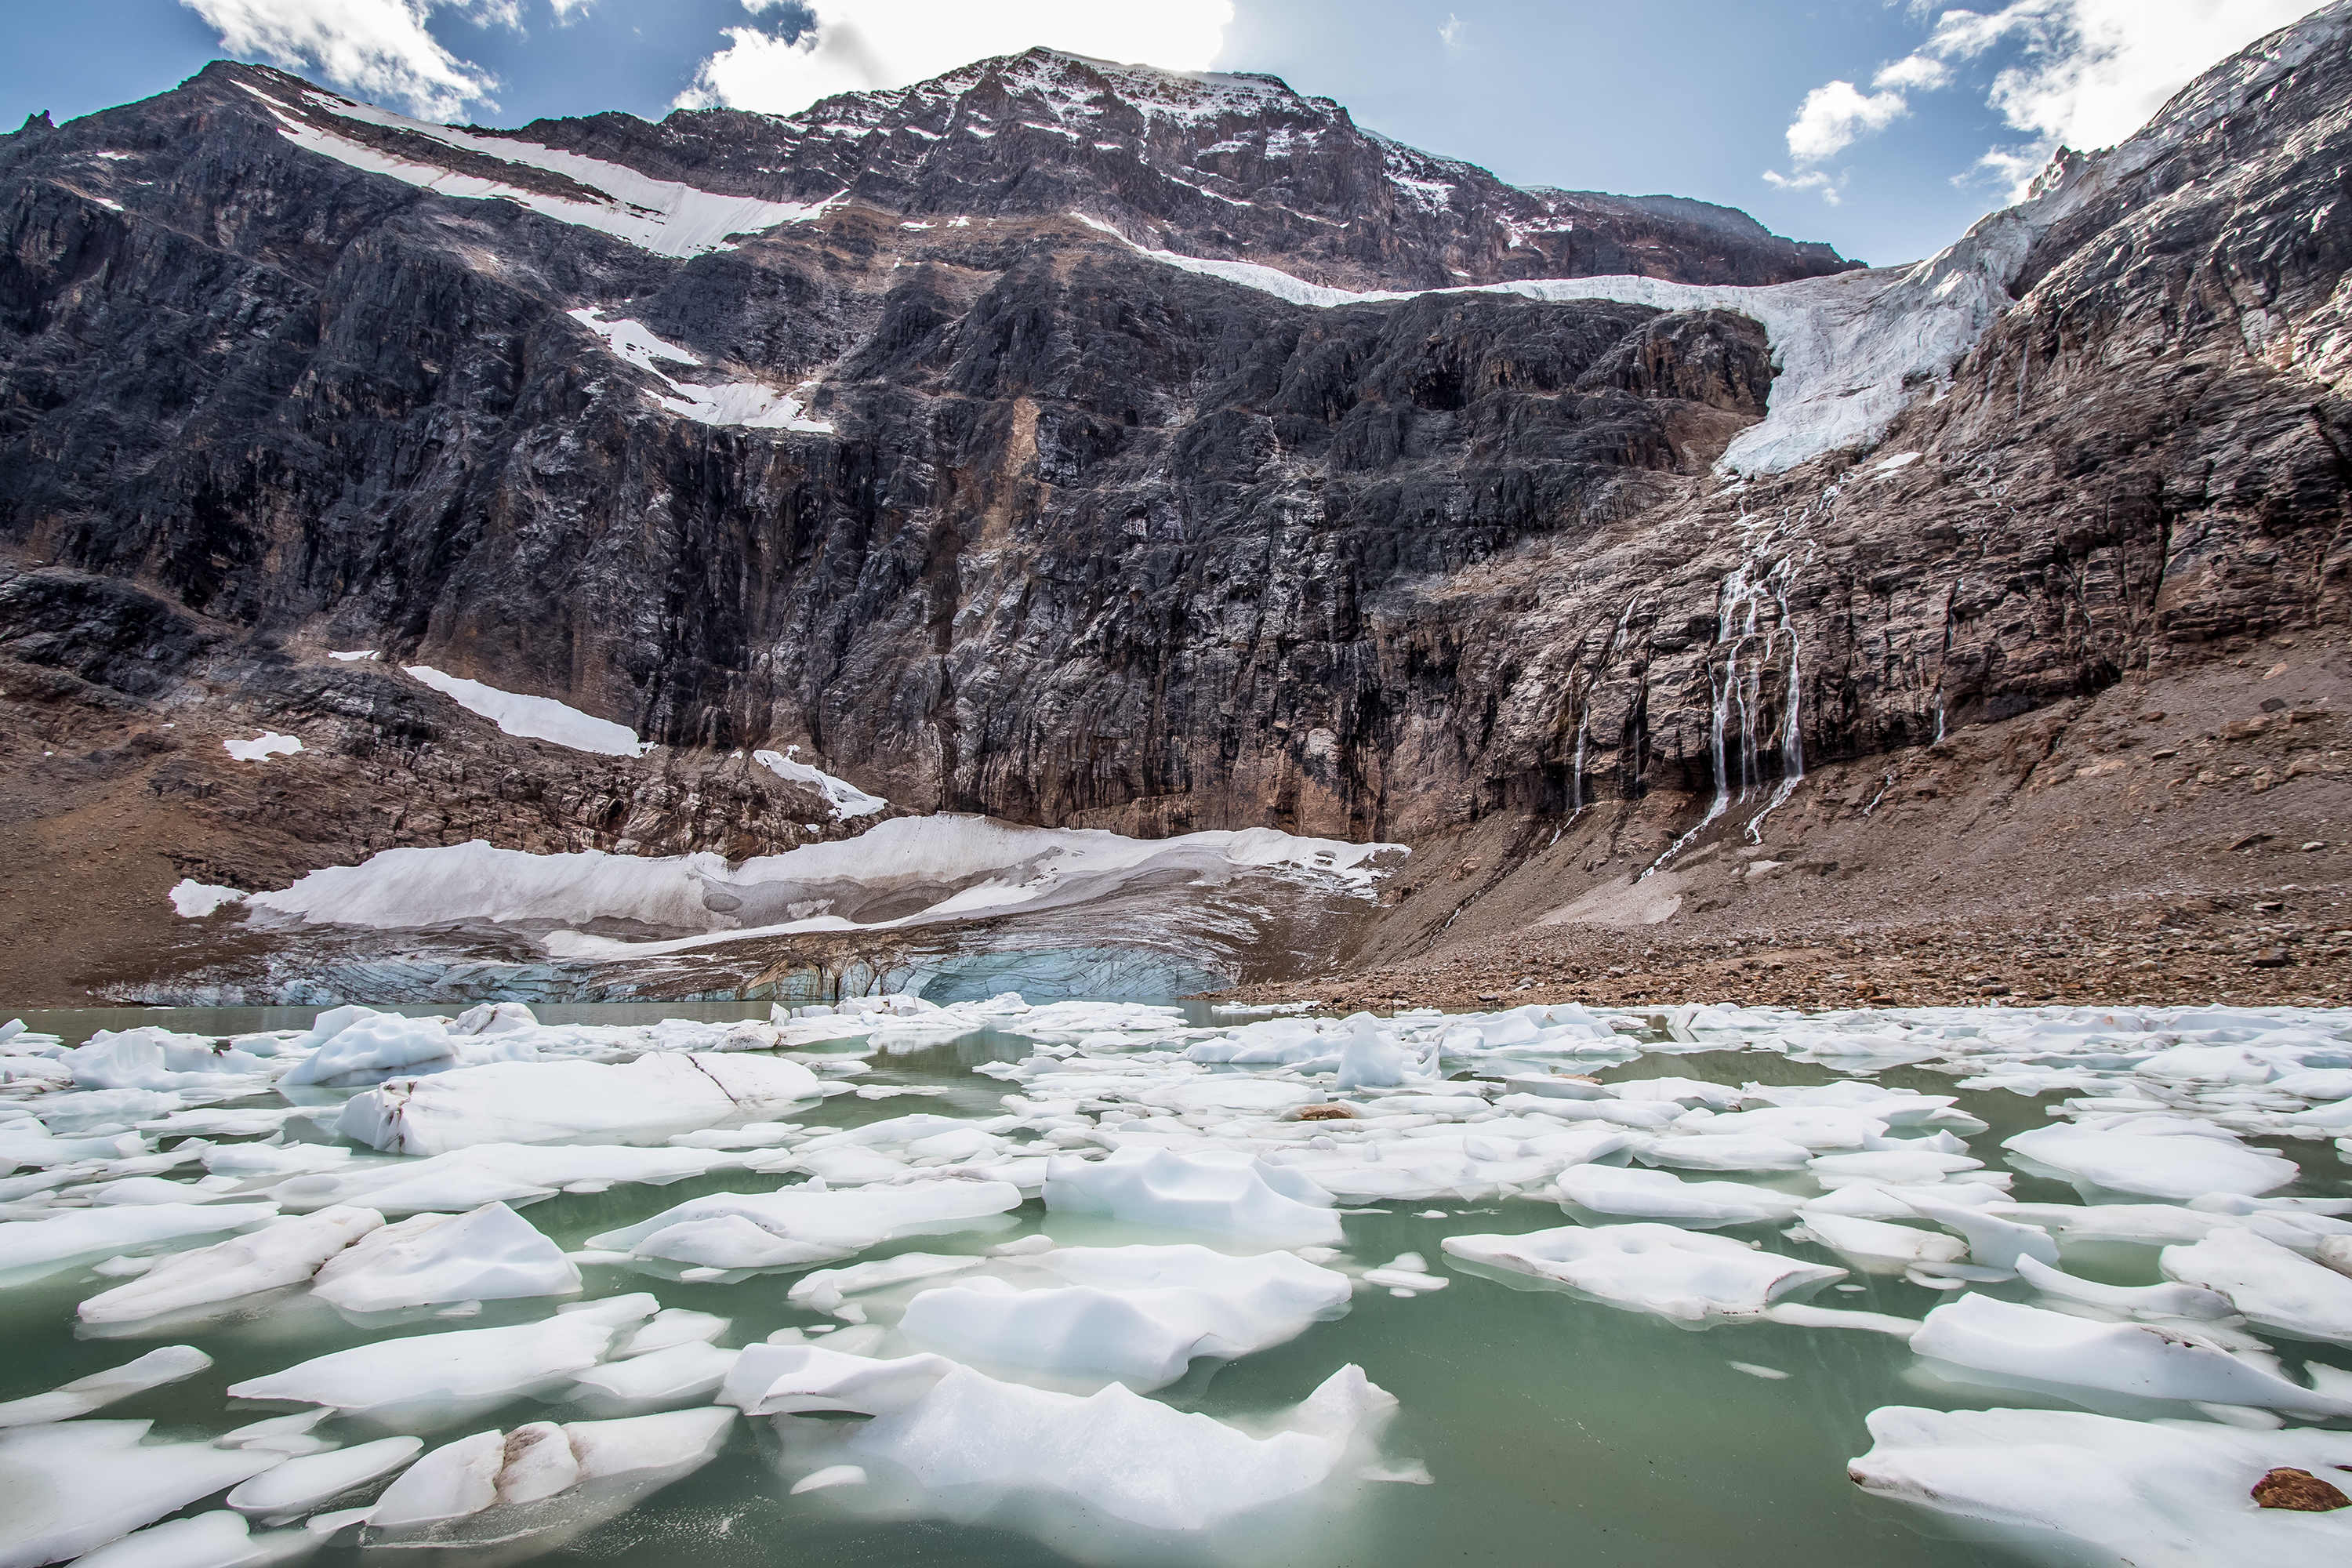 Glacier & Mount Edith Cavell - Marie Naudon